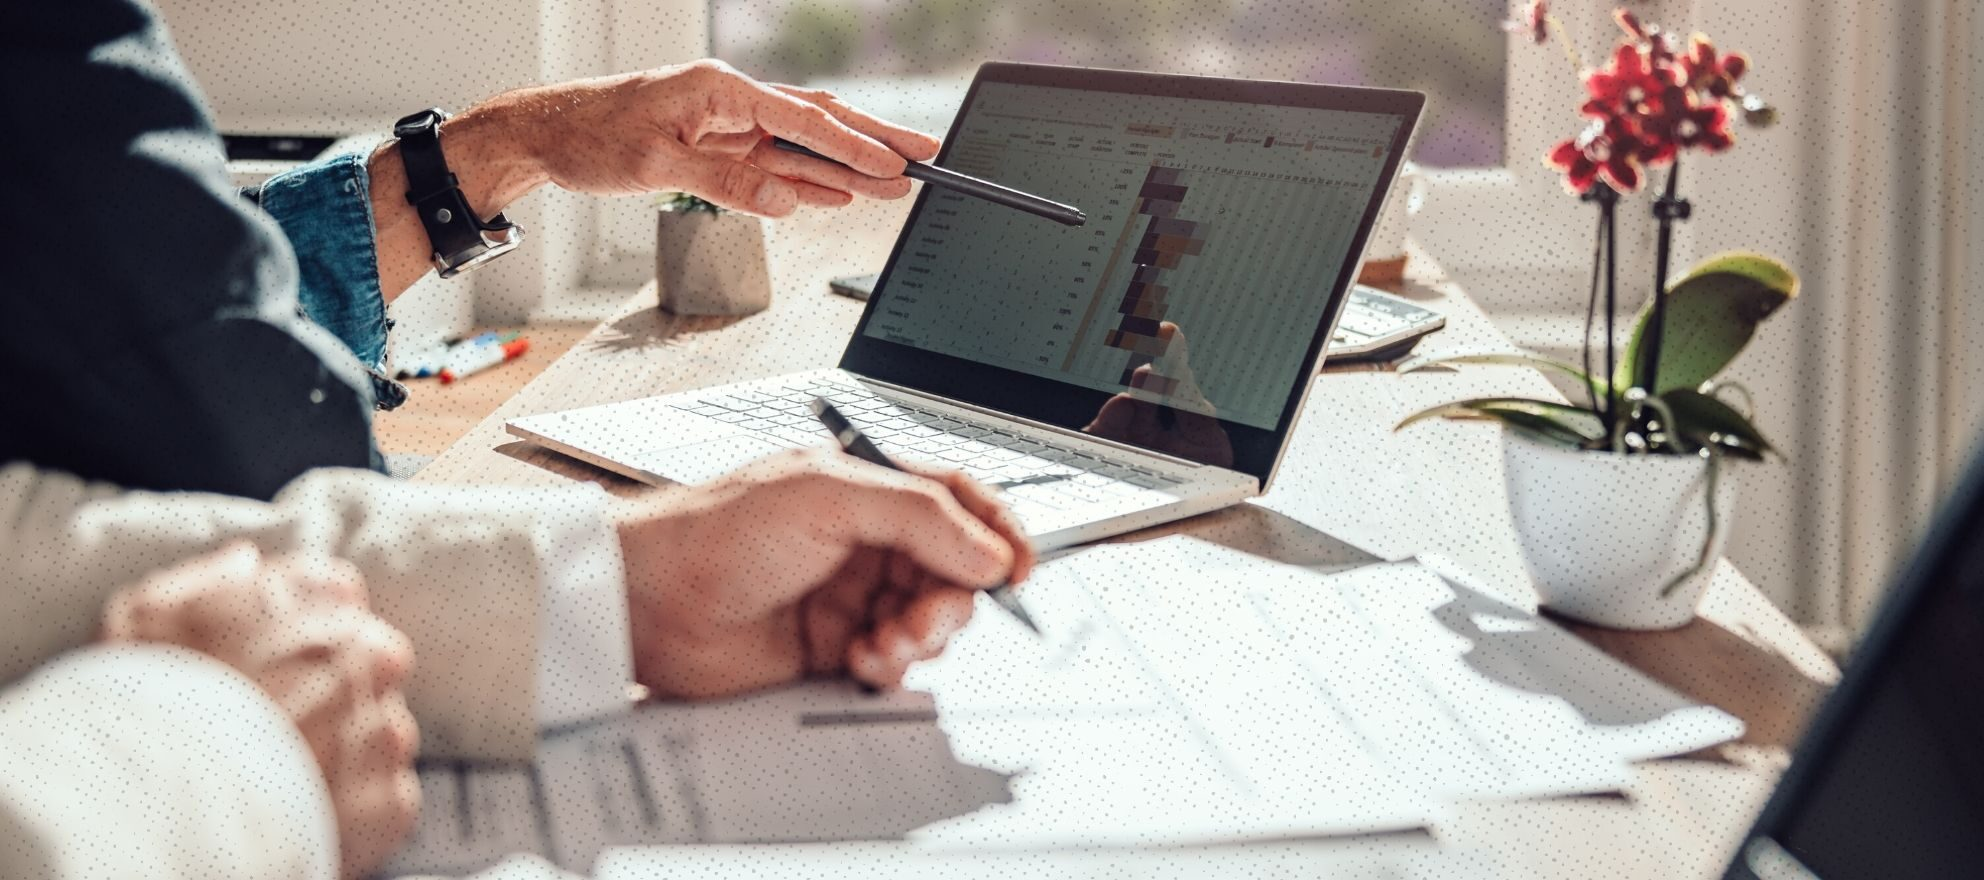 8 steps for crafting a winning 2020 business plan